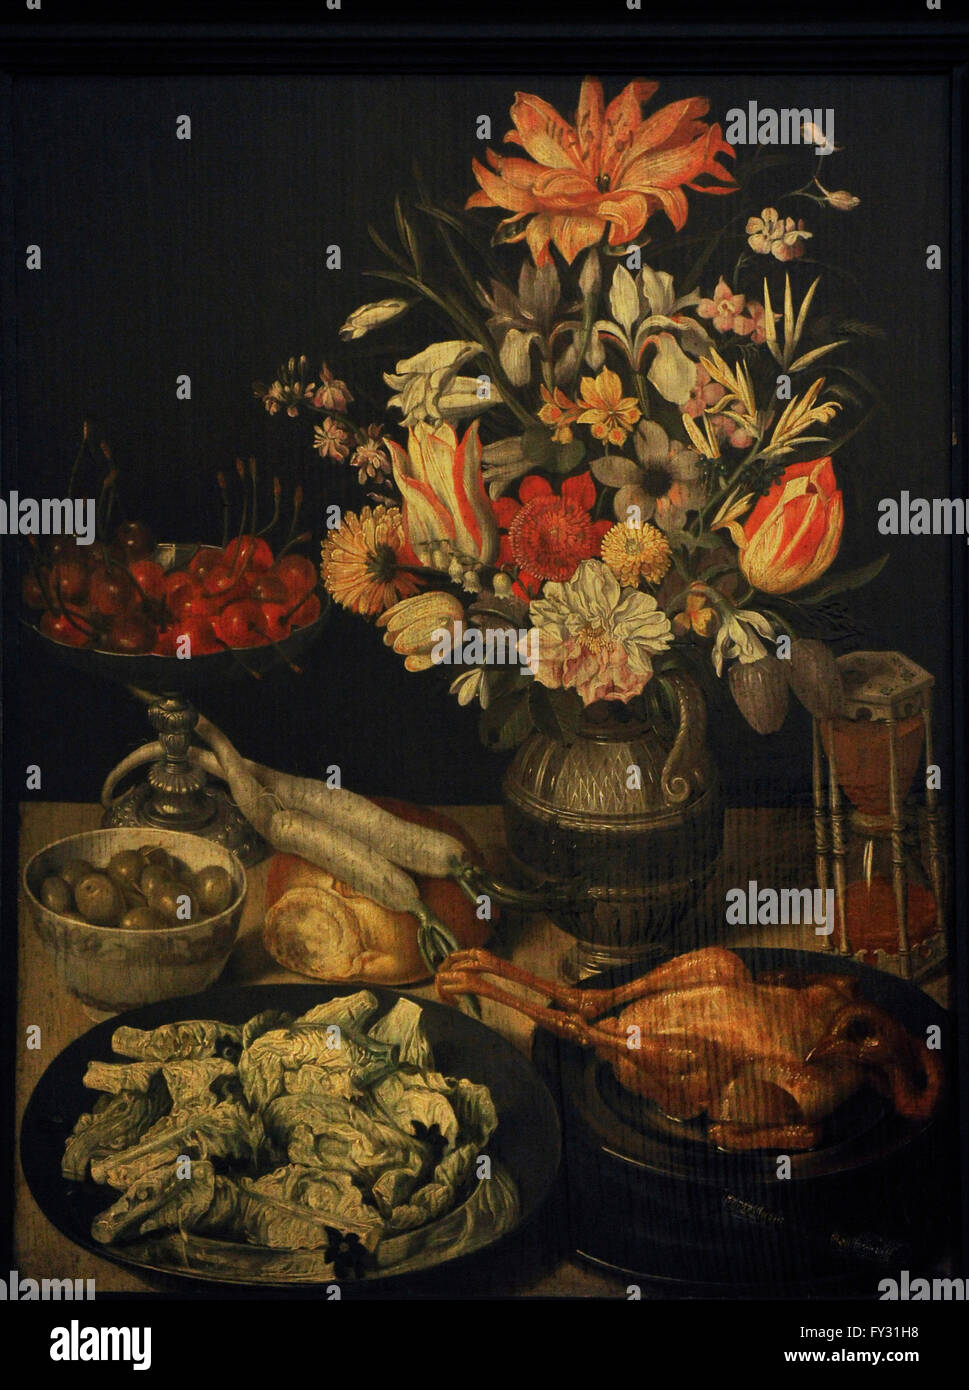 Georg Flegel (1566-1638). German painter. Still Life with Flowers and Snacks, 1630-1635. Oil on panel. The State - Stock Image